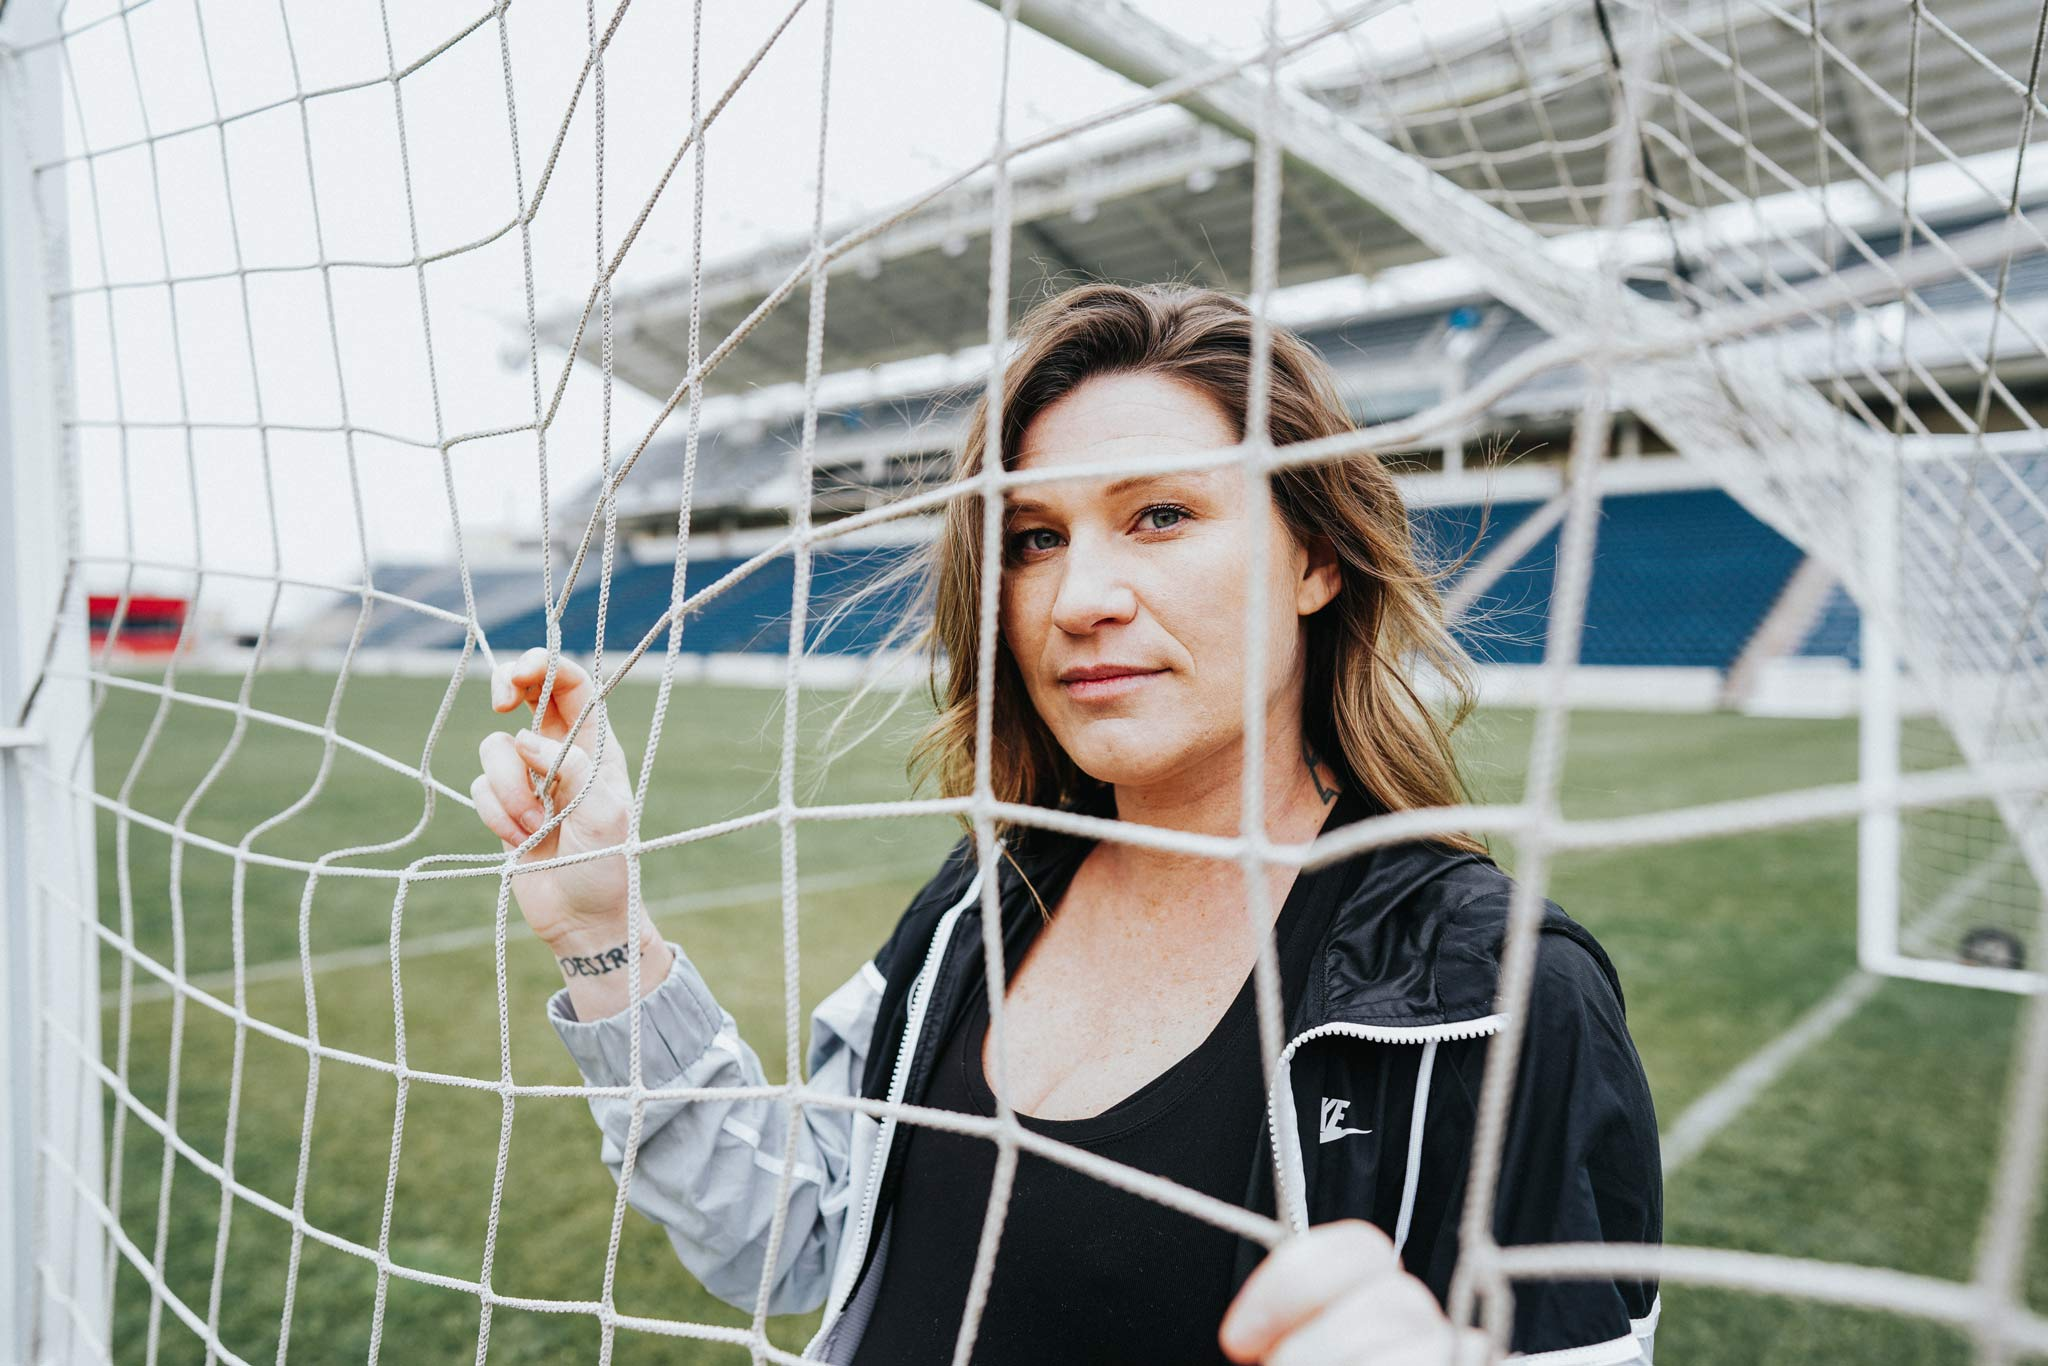 Arin looks through the goal netting while holding onto it.